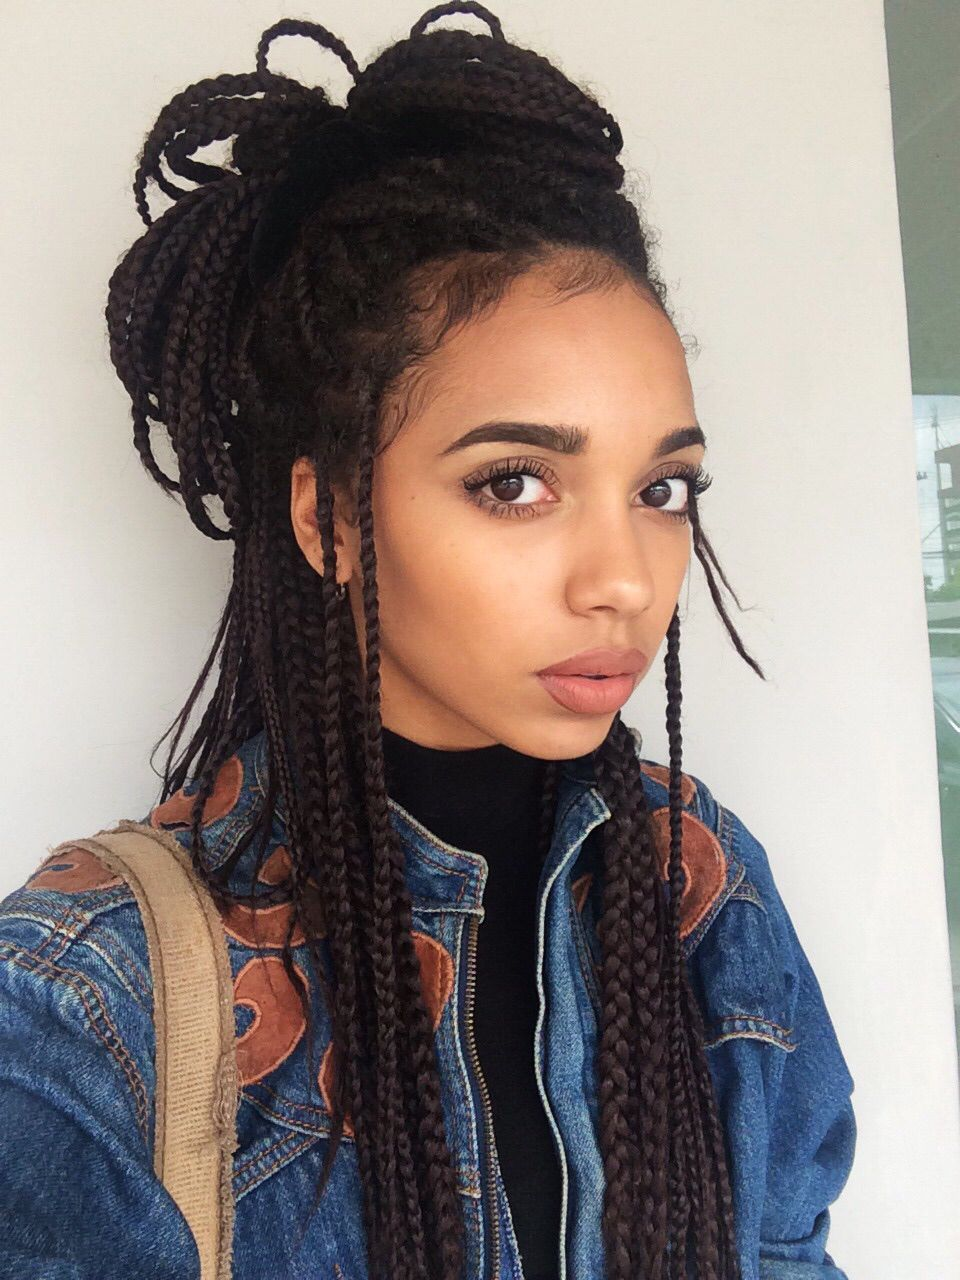 Pin by pascasie jason on makeup looks pinterest braids hair and